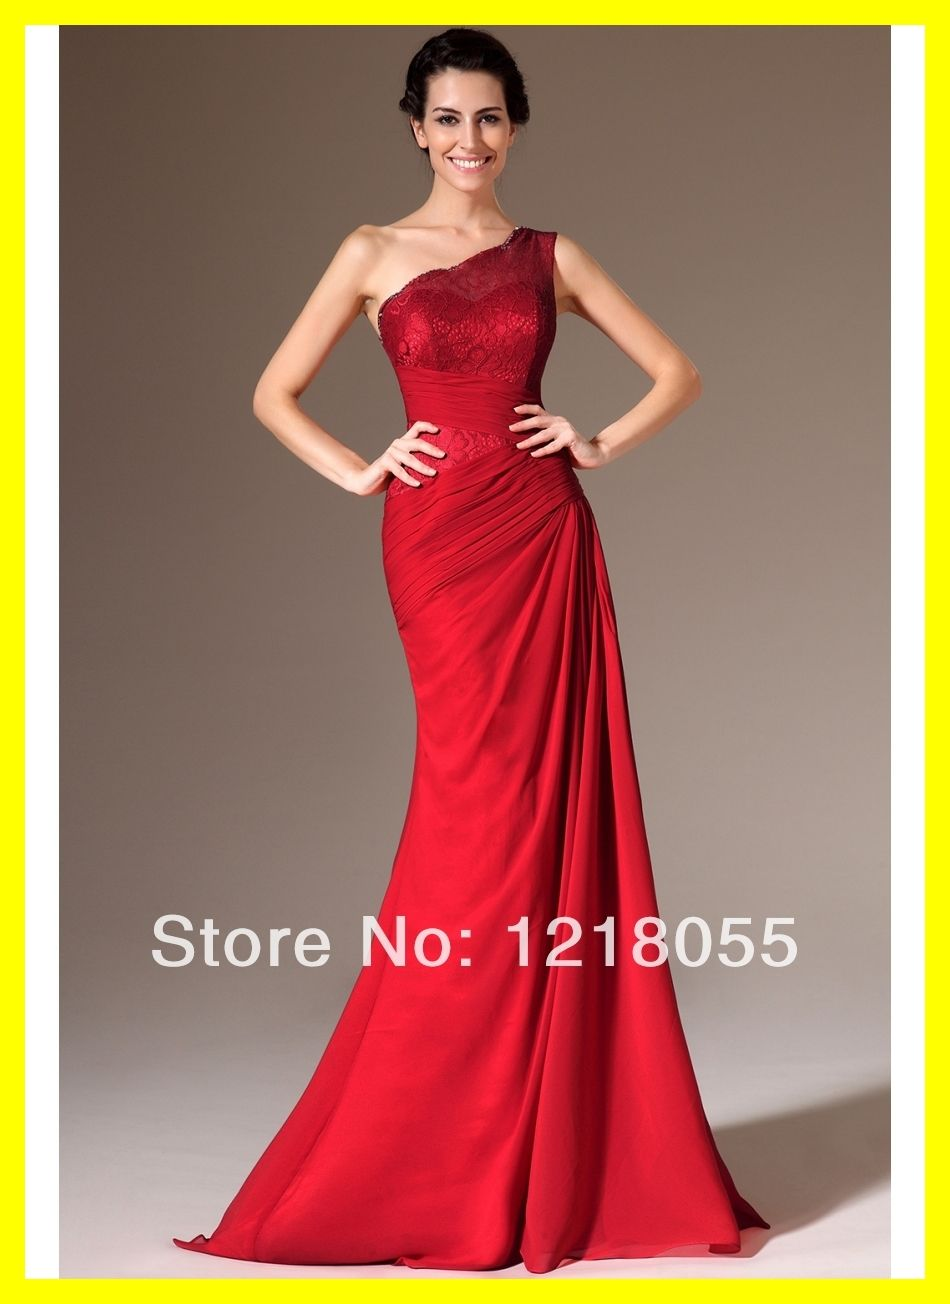 Designer Evening Dresses Uk Sale - Red Prom Dresses | para mi ...